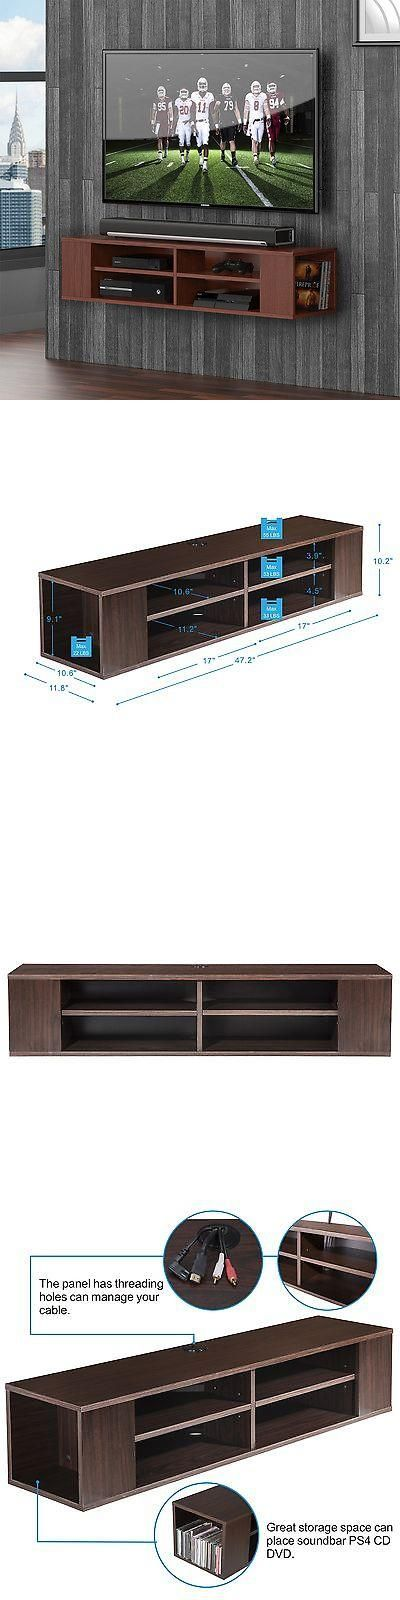 Entertainment Units, TV Stands: Floating Entertainment Center Wall Mount Hanging Media Console Storage Tv Stand BUY IT NOW ONLY: $89.99 #priceabateEntertainmentUnitsTVStands OR #priceabate